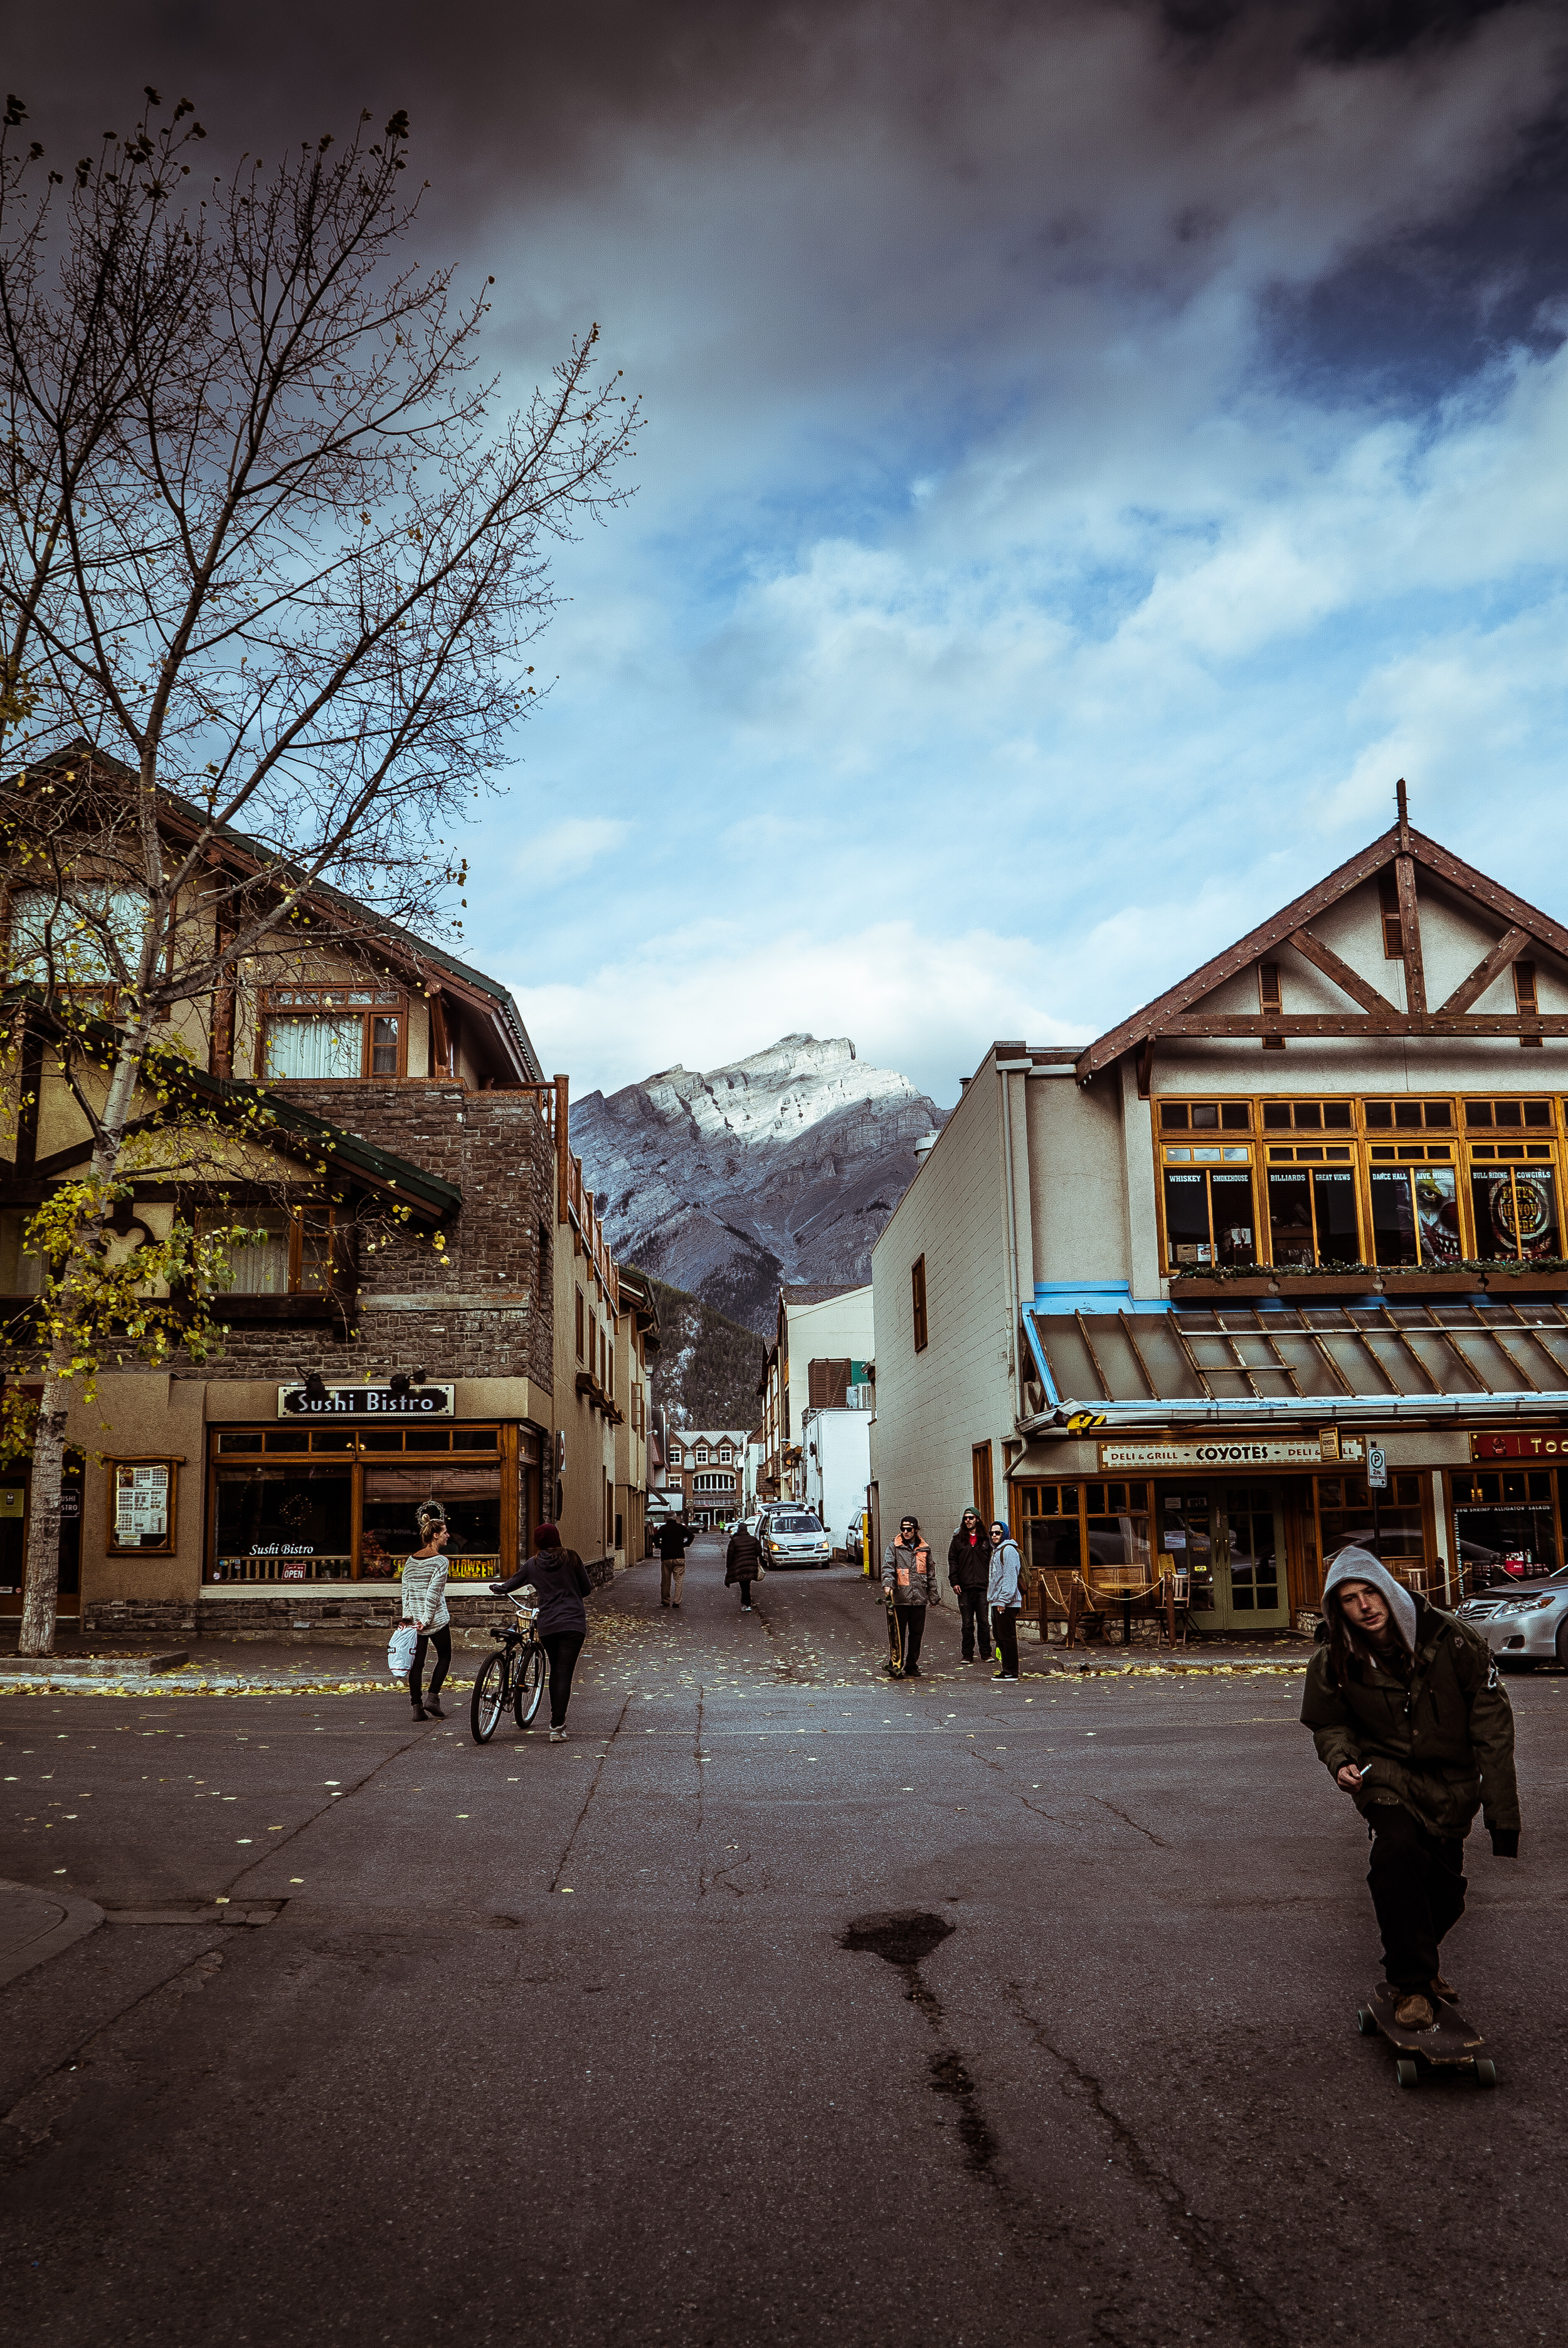 In a back alley in Banff. With Cascade Mountain